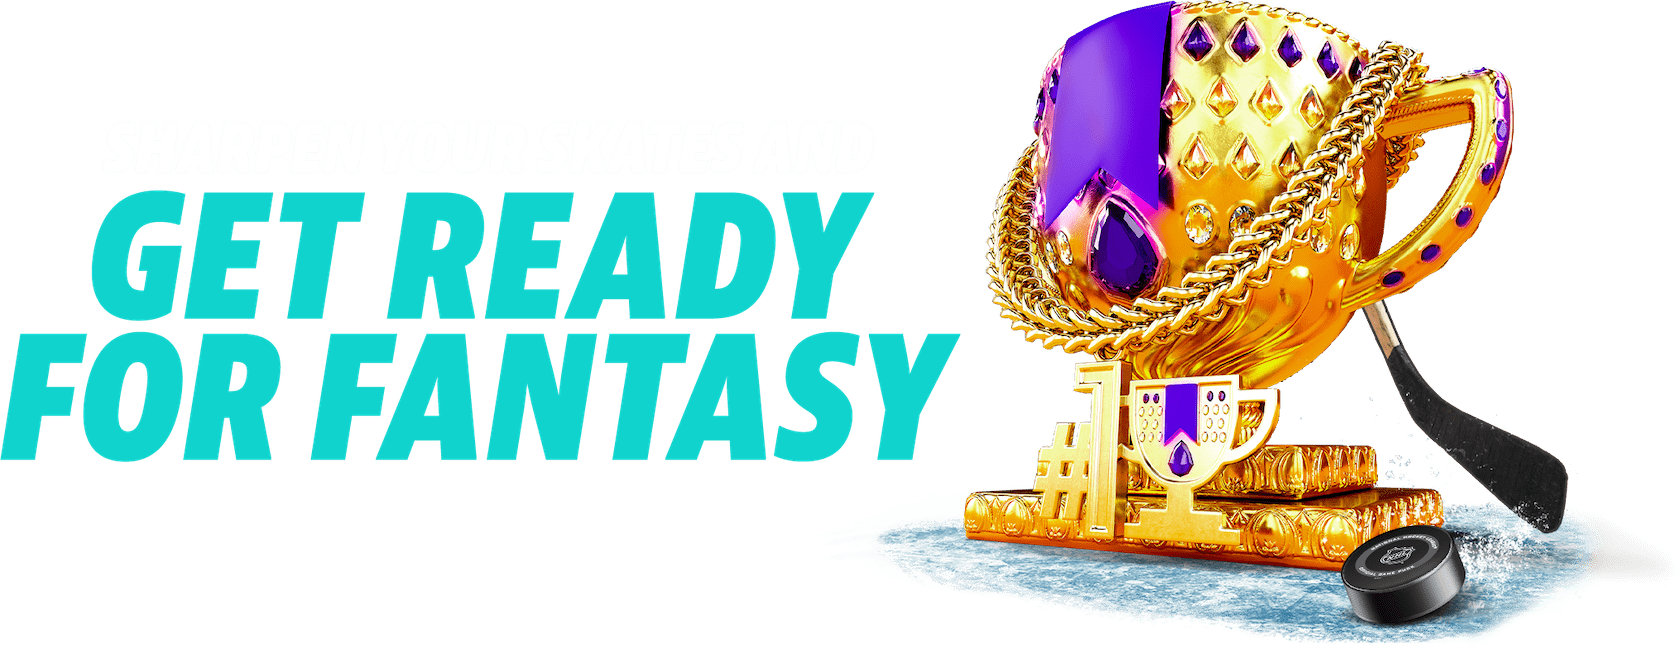 Trophy; Sharpen your skates and get ready for fantasy